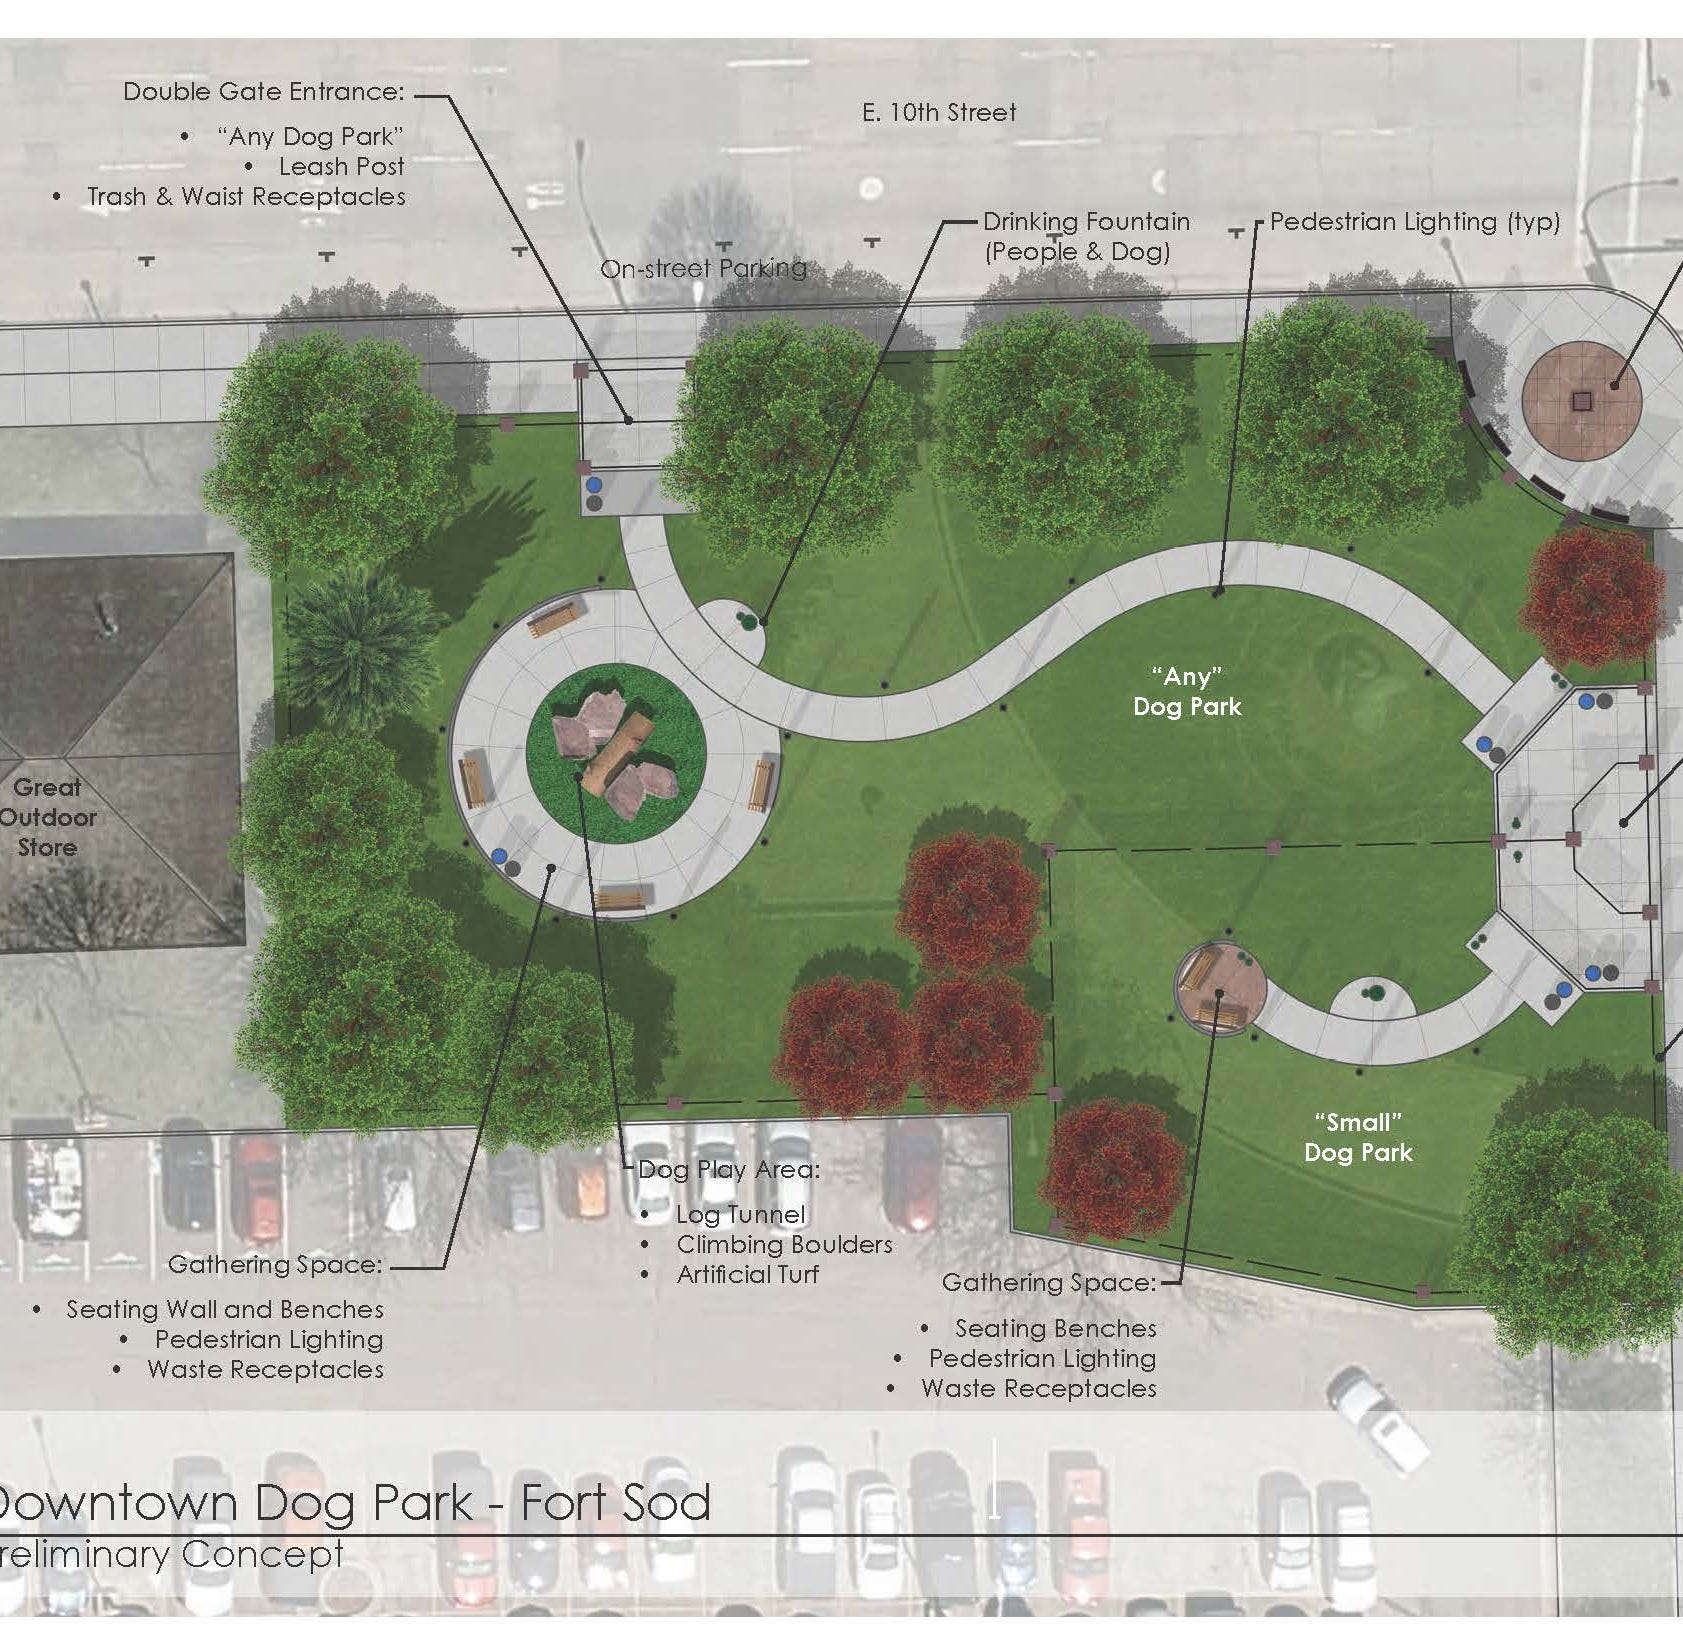 New dog park proposed for downtown Sioux Falls